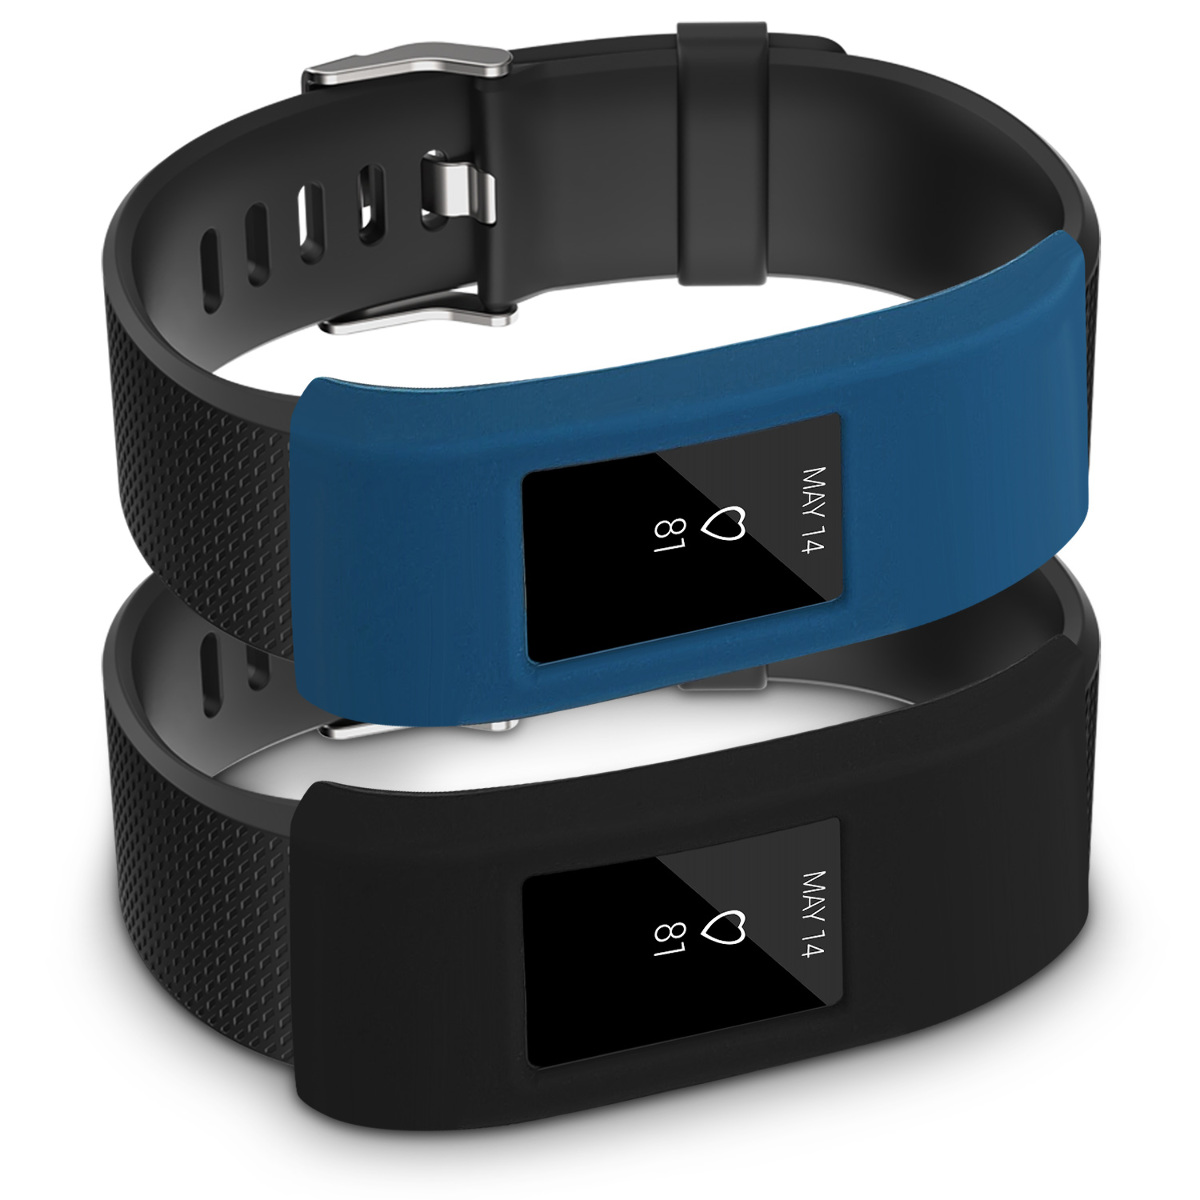 2x silikon armband schutz h lle f r fitbit charge 2 fitnessband case cover ebay. Black Bedroom Furniture Sets. Home Design Ideas